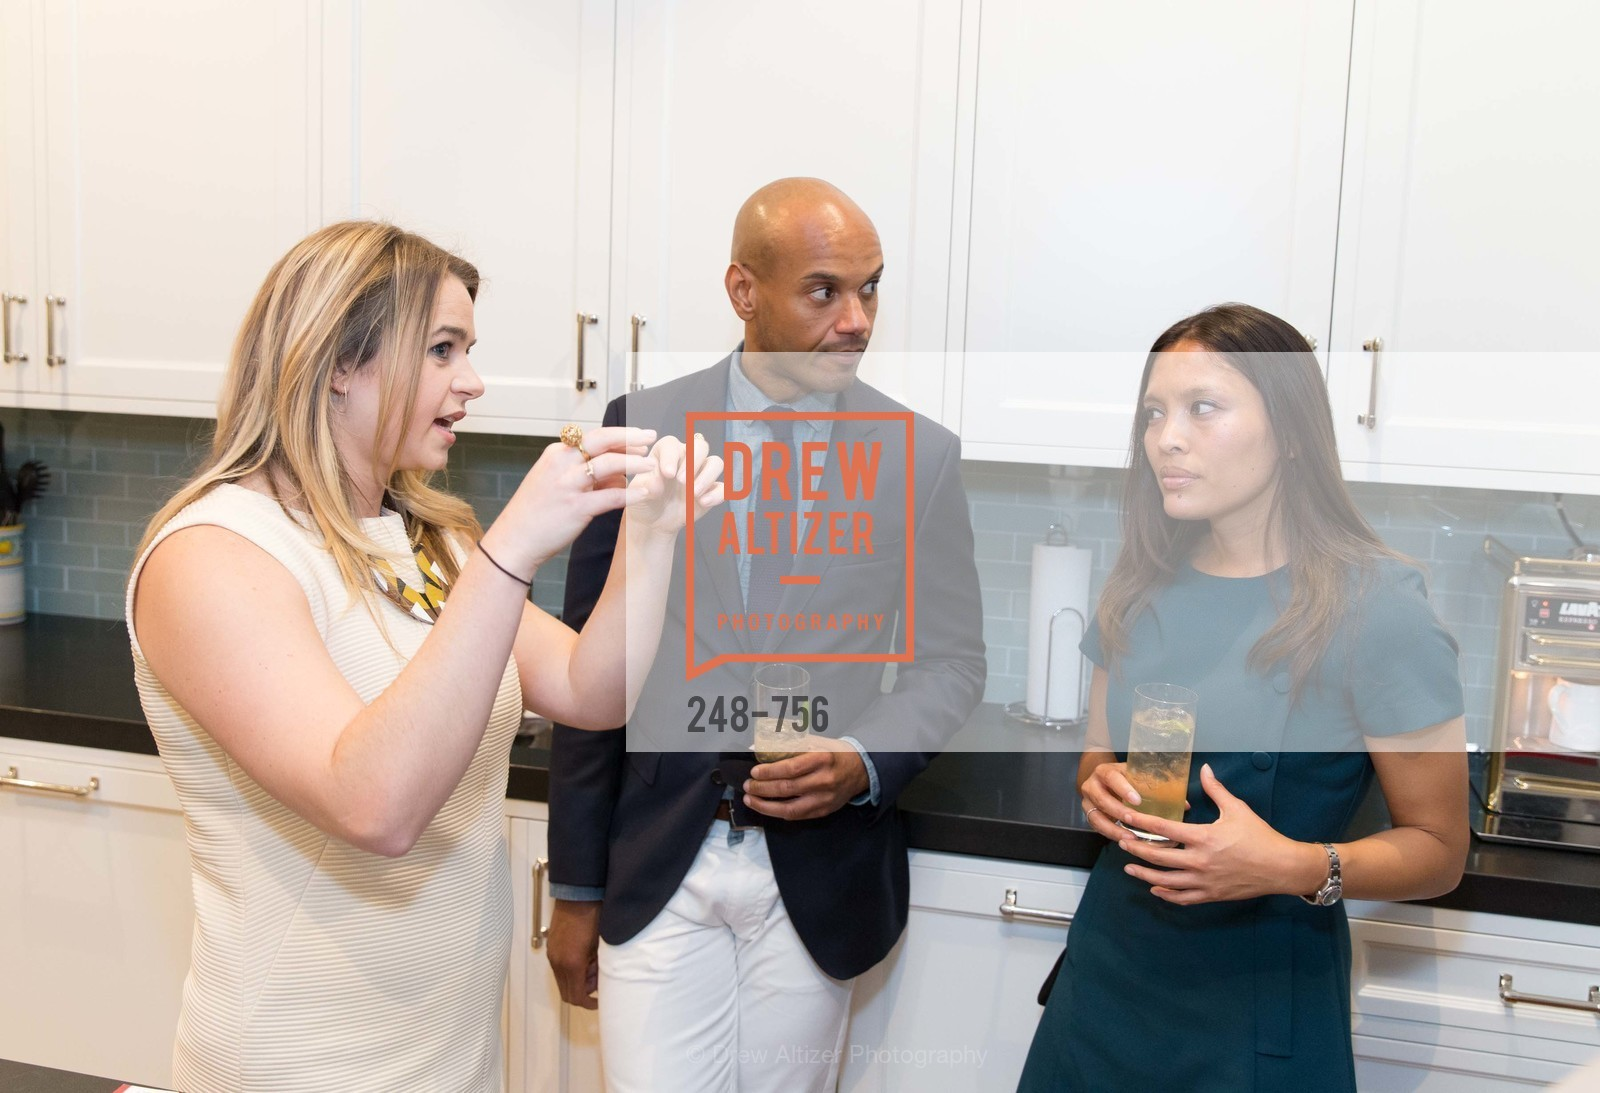 Meagan Tenety, Roderic Seymore, Kristine Young, FAIR TRADE USA:  Tapas, Sangria & Music, US, May 30th, 2015,Drew Altizer, Drew Altizer Photography, full-service agency, private events, San Francisco photographer, photographer california